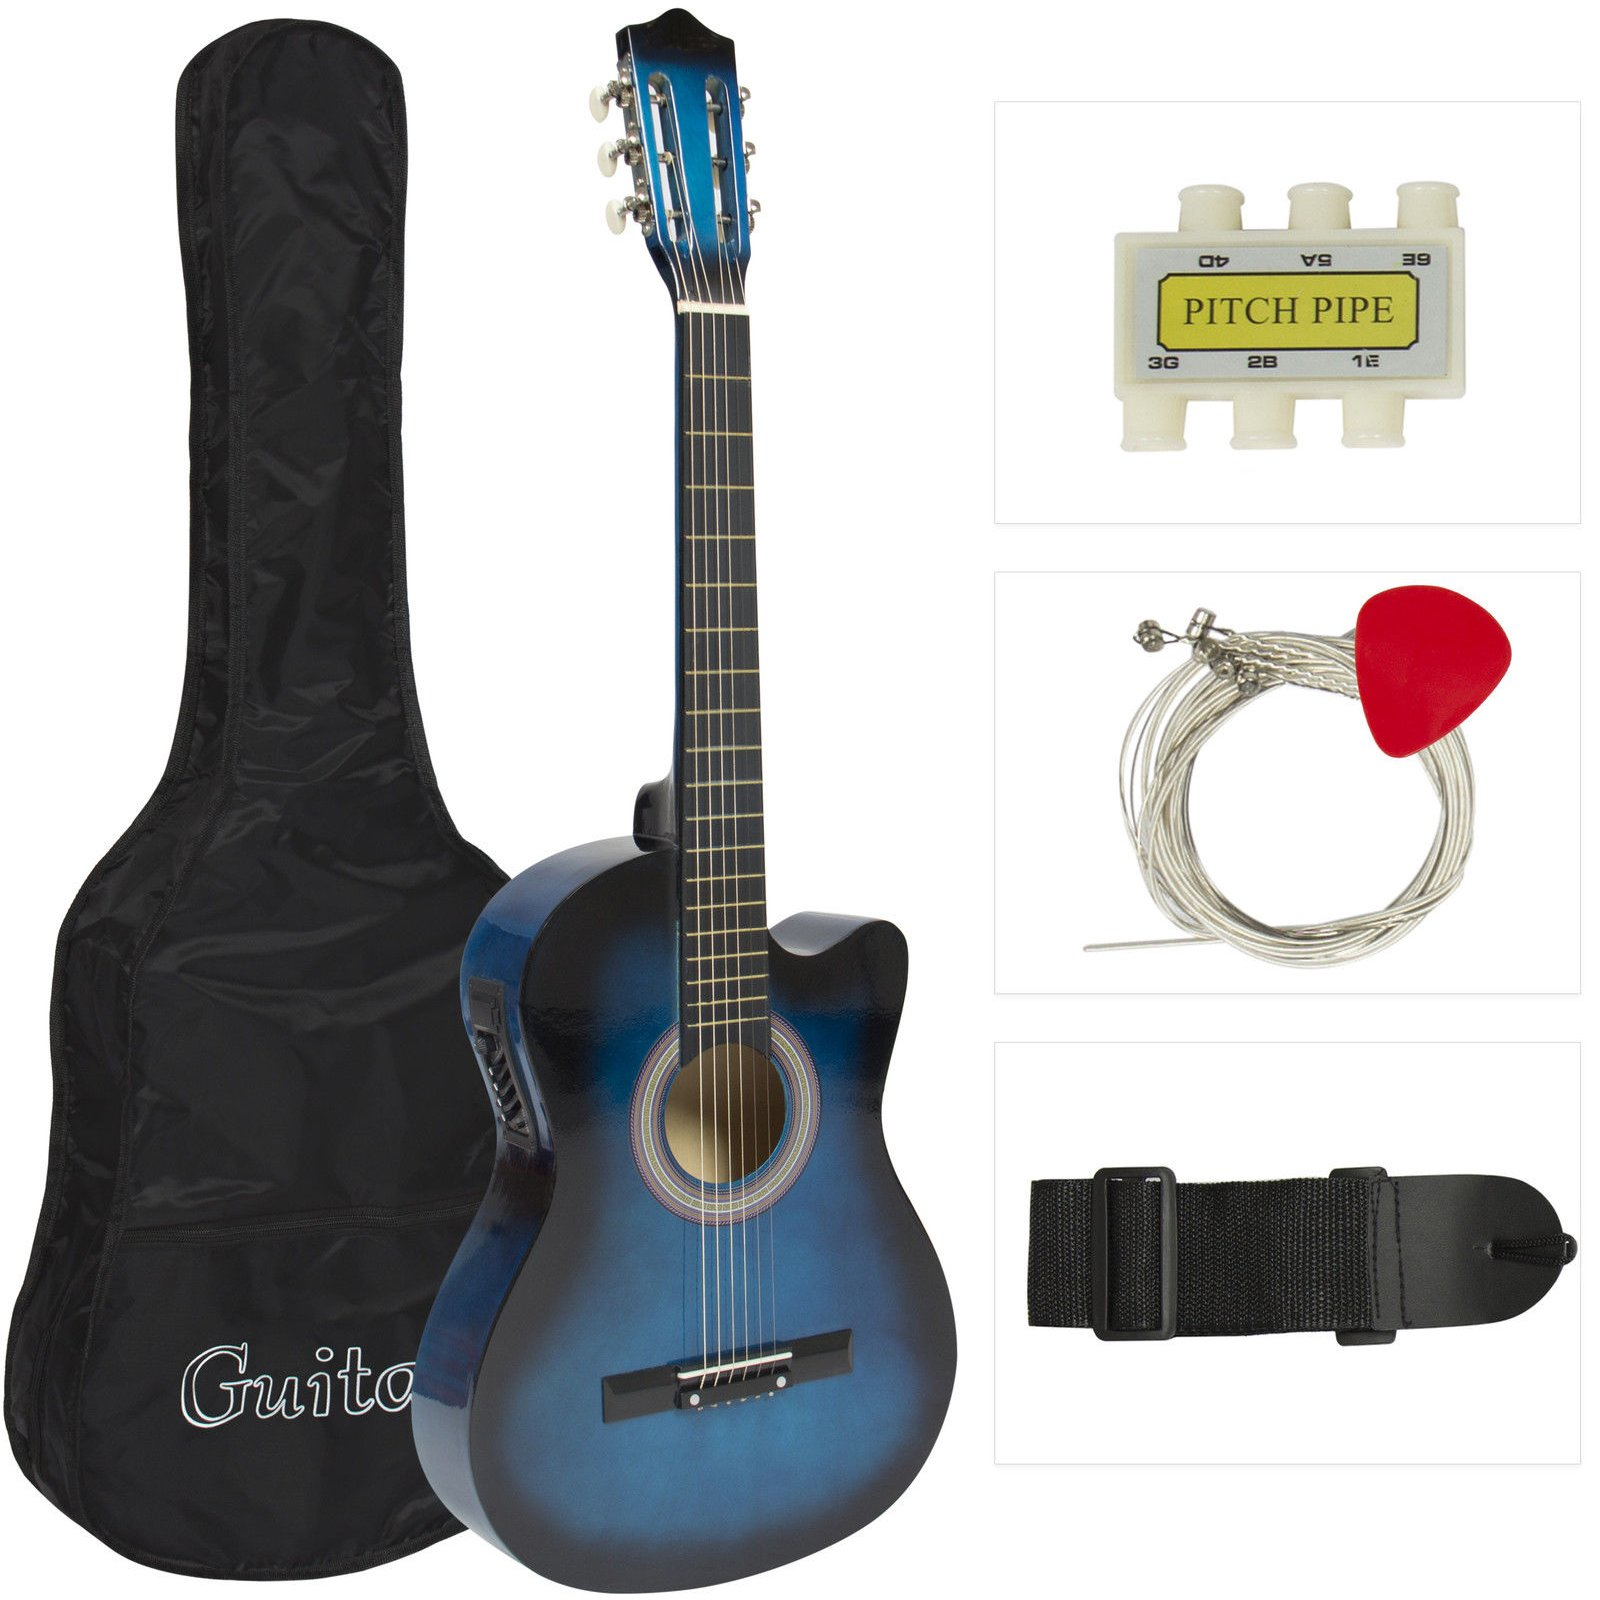 Cheap Electric Acoustic Guitar Cutaway Design With Guitar Case Strap Tuner Blue New Black Friday & Cyber Monday 2019